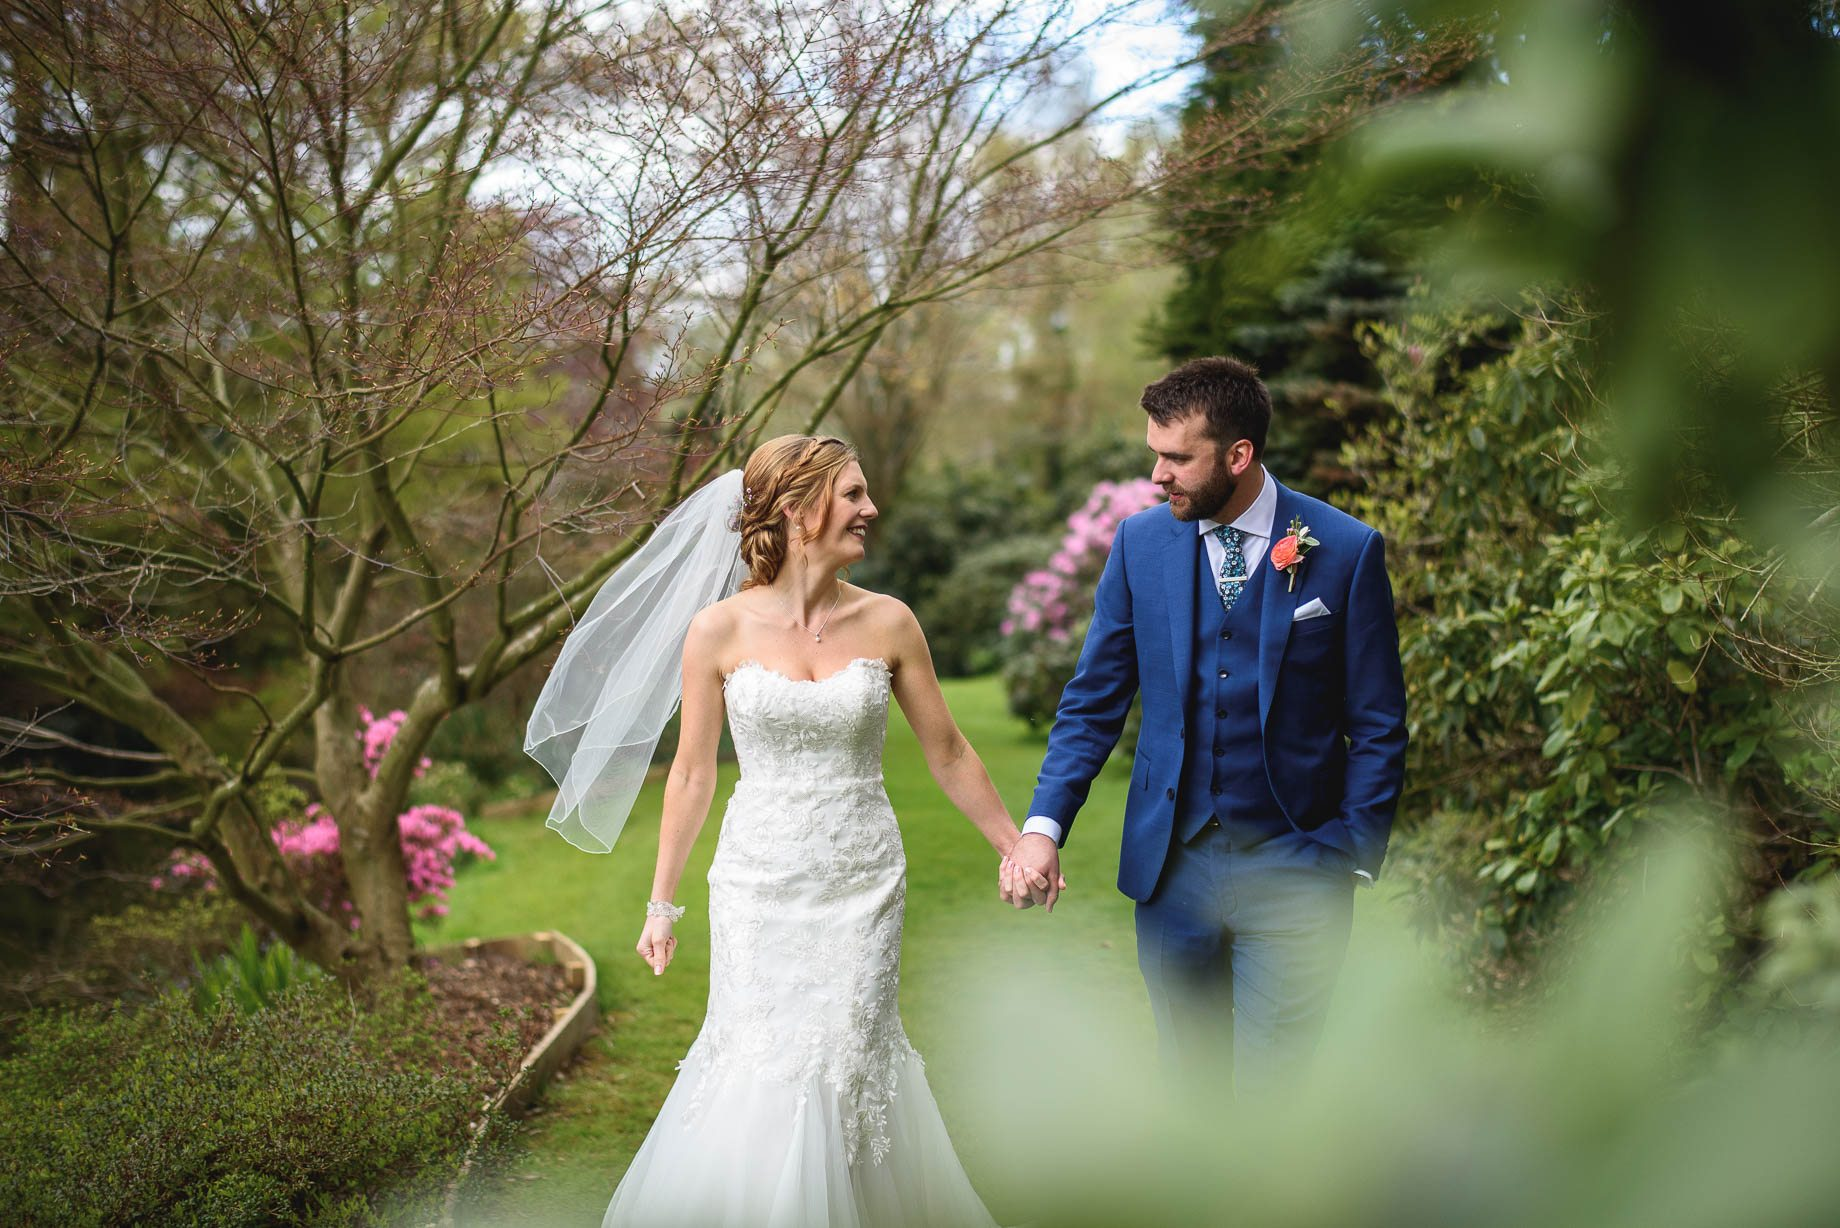 Rivervale Barn wedding photography by Guy Collier - Claire and Simon (95 of 133)